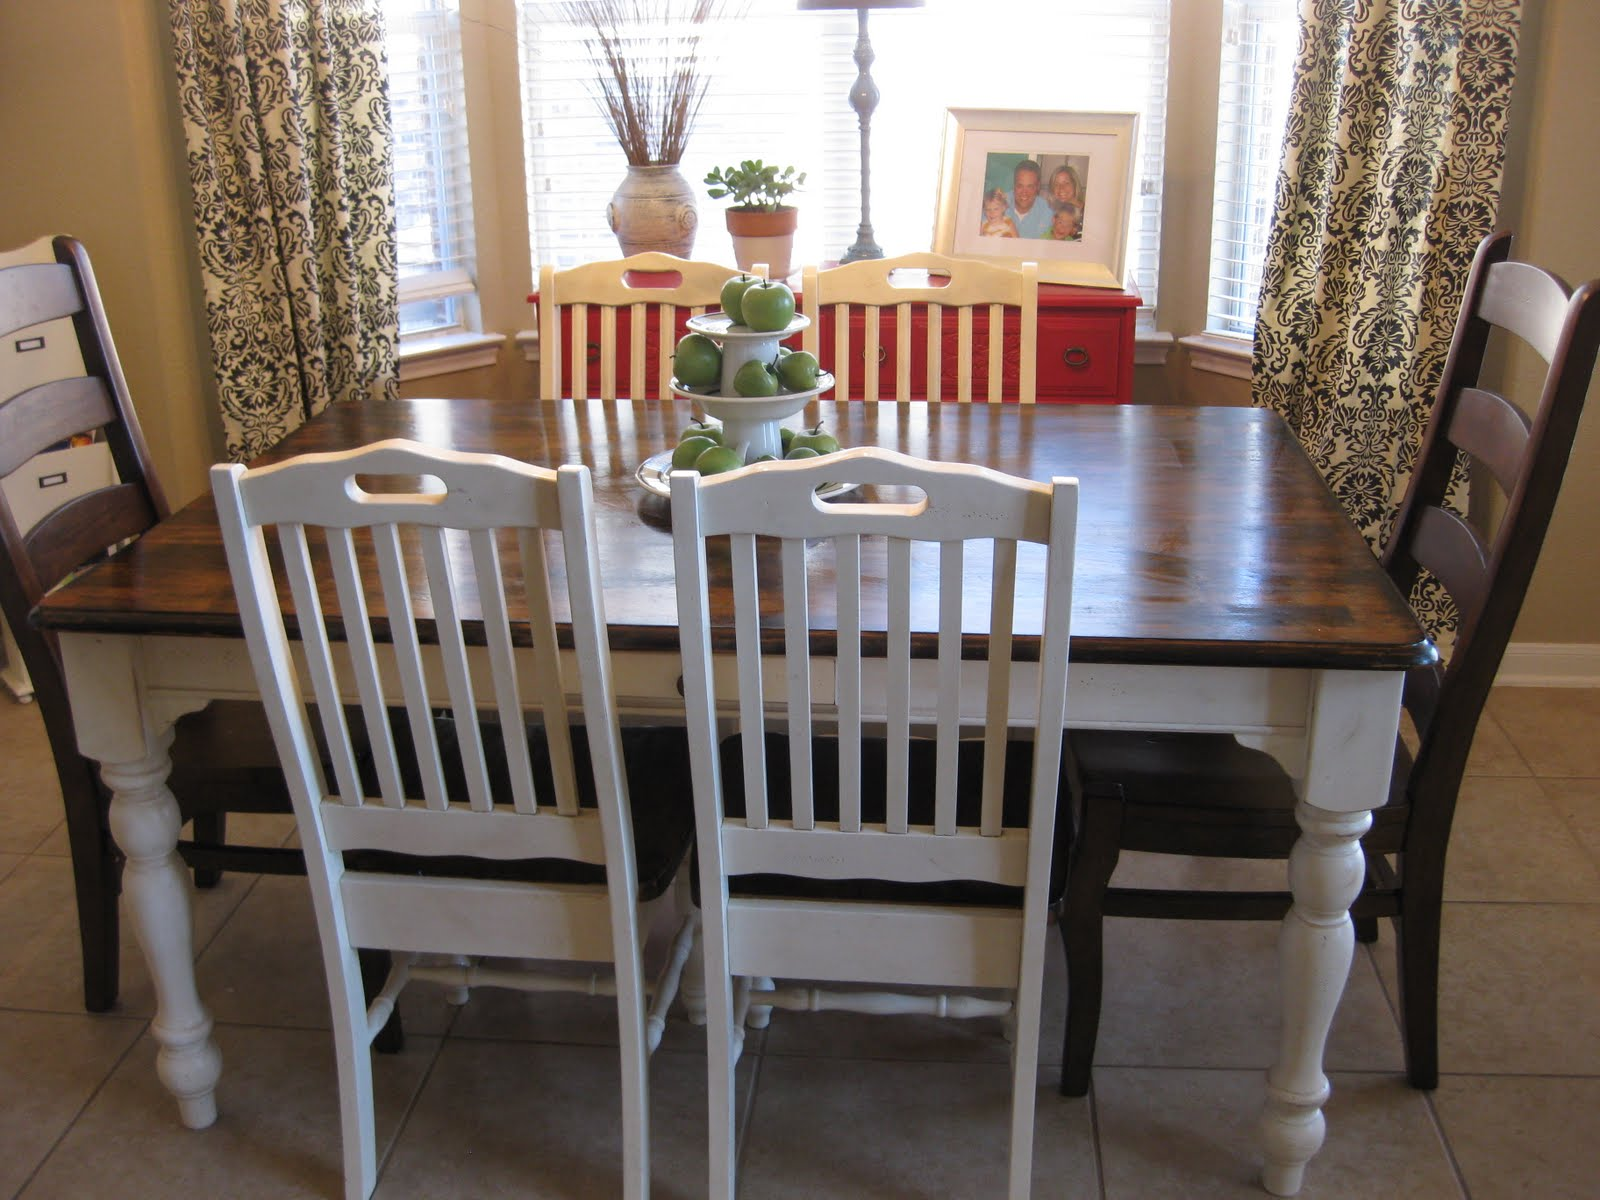 Old Kitchen Table Life love larson new old kitchen table staining workwithnaturefo